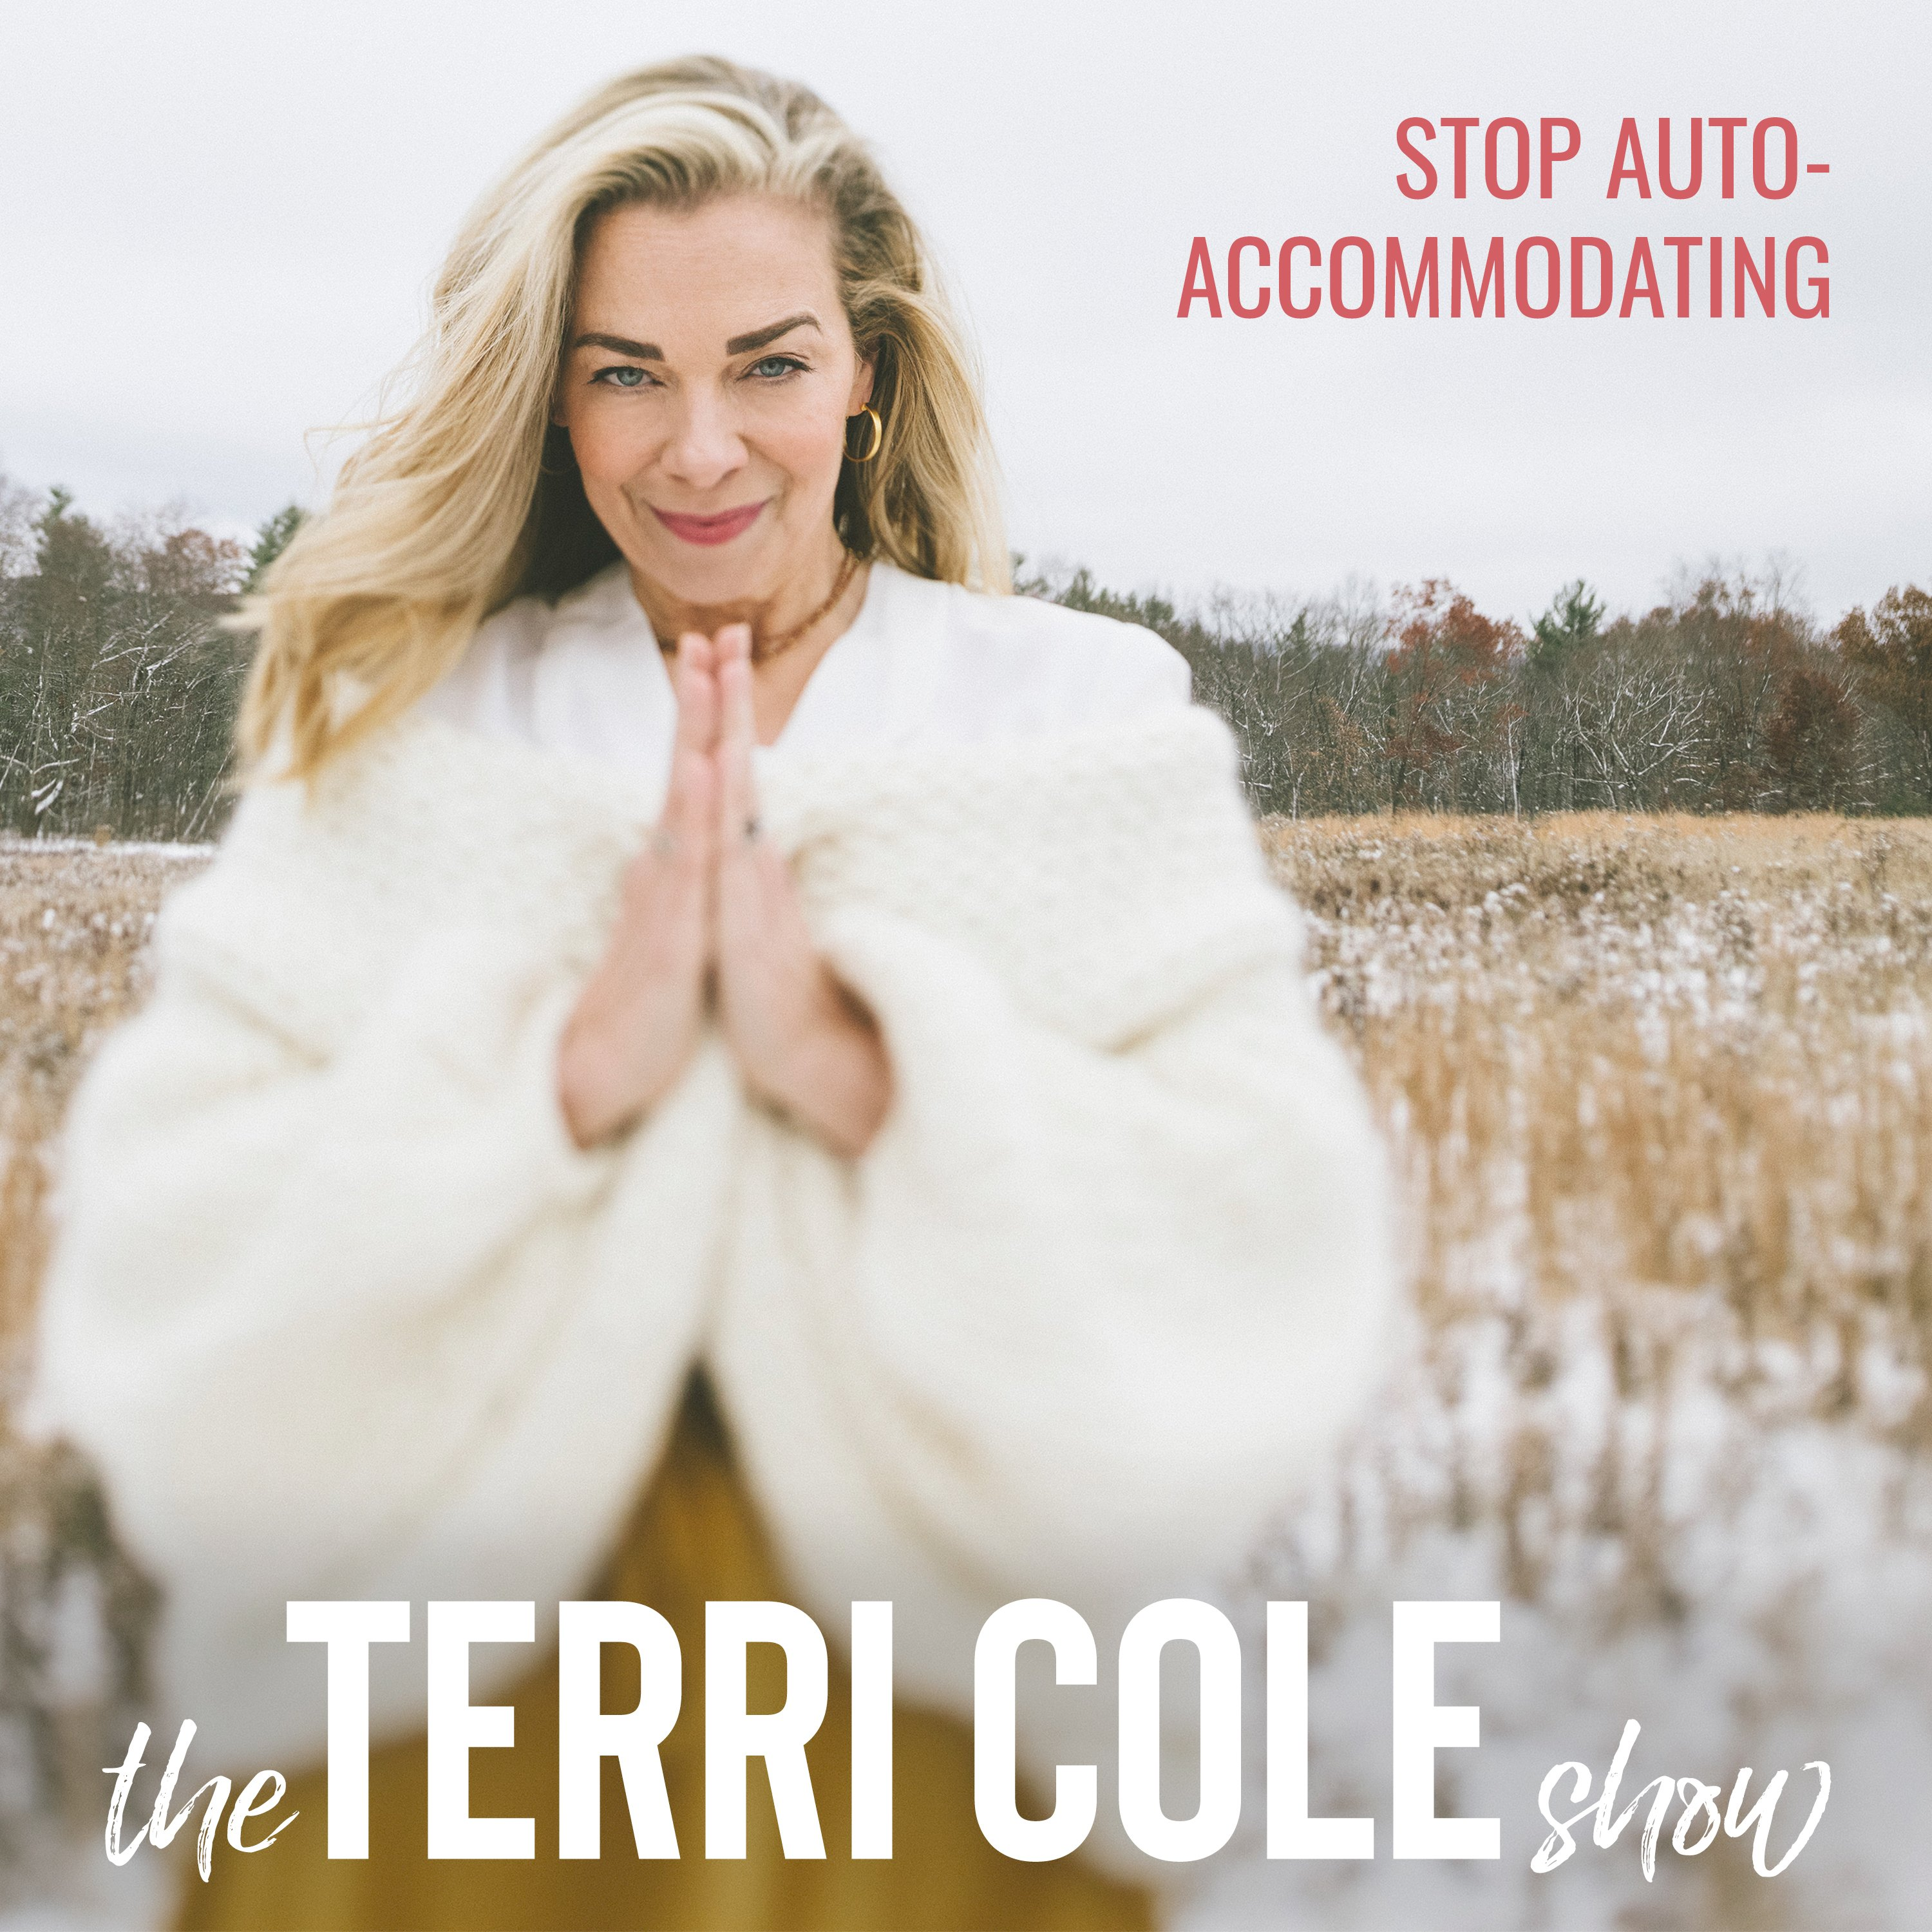 Stop Auto-Accommodating on The Terri Cole Show